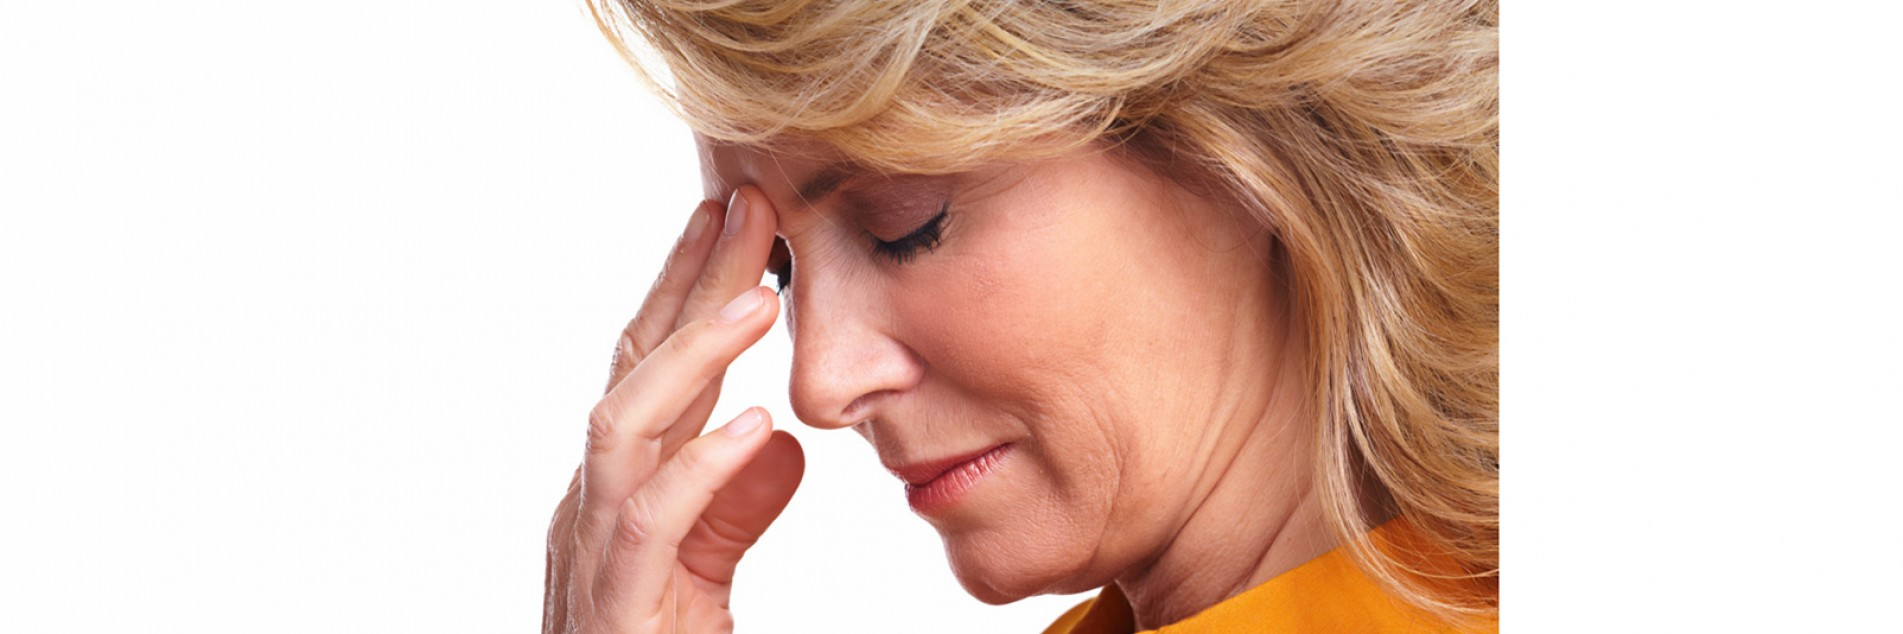 Would you like more support during Menopause?